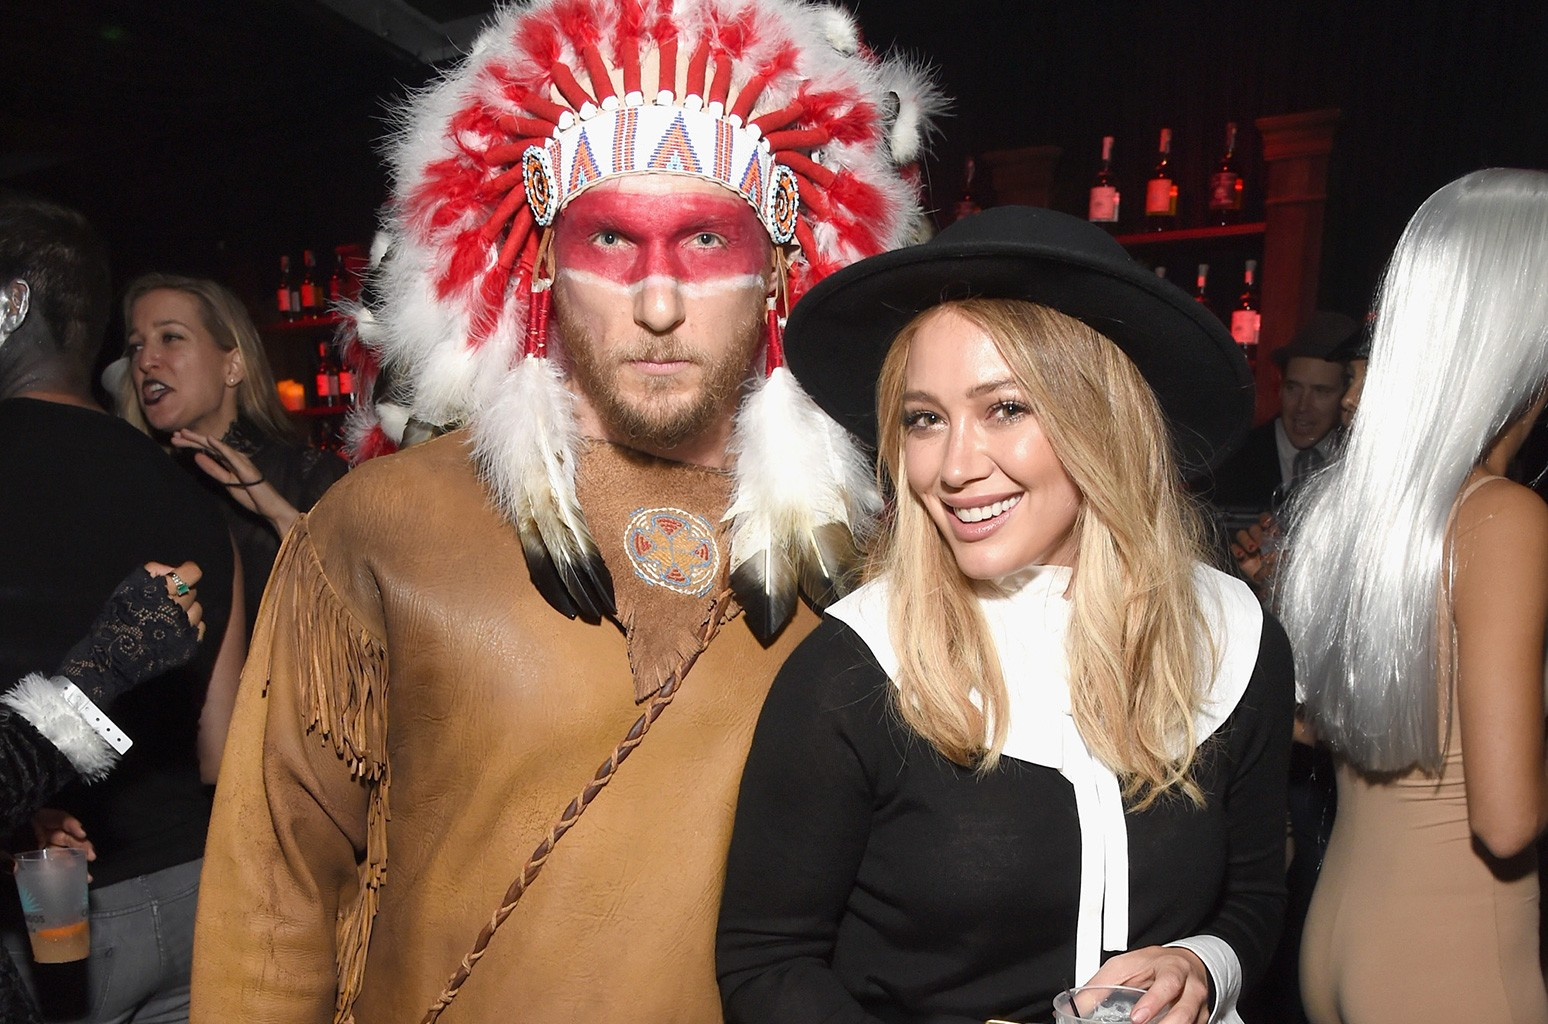 Hilary Duff and Jason Walsh attend the Casamigos Halloween Party at a private residence on Oct. 28, 2016 in Beverly Hills, Calif.